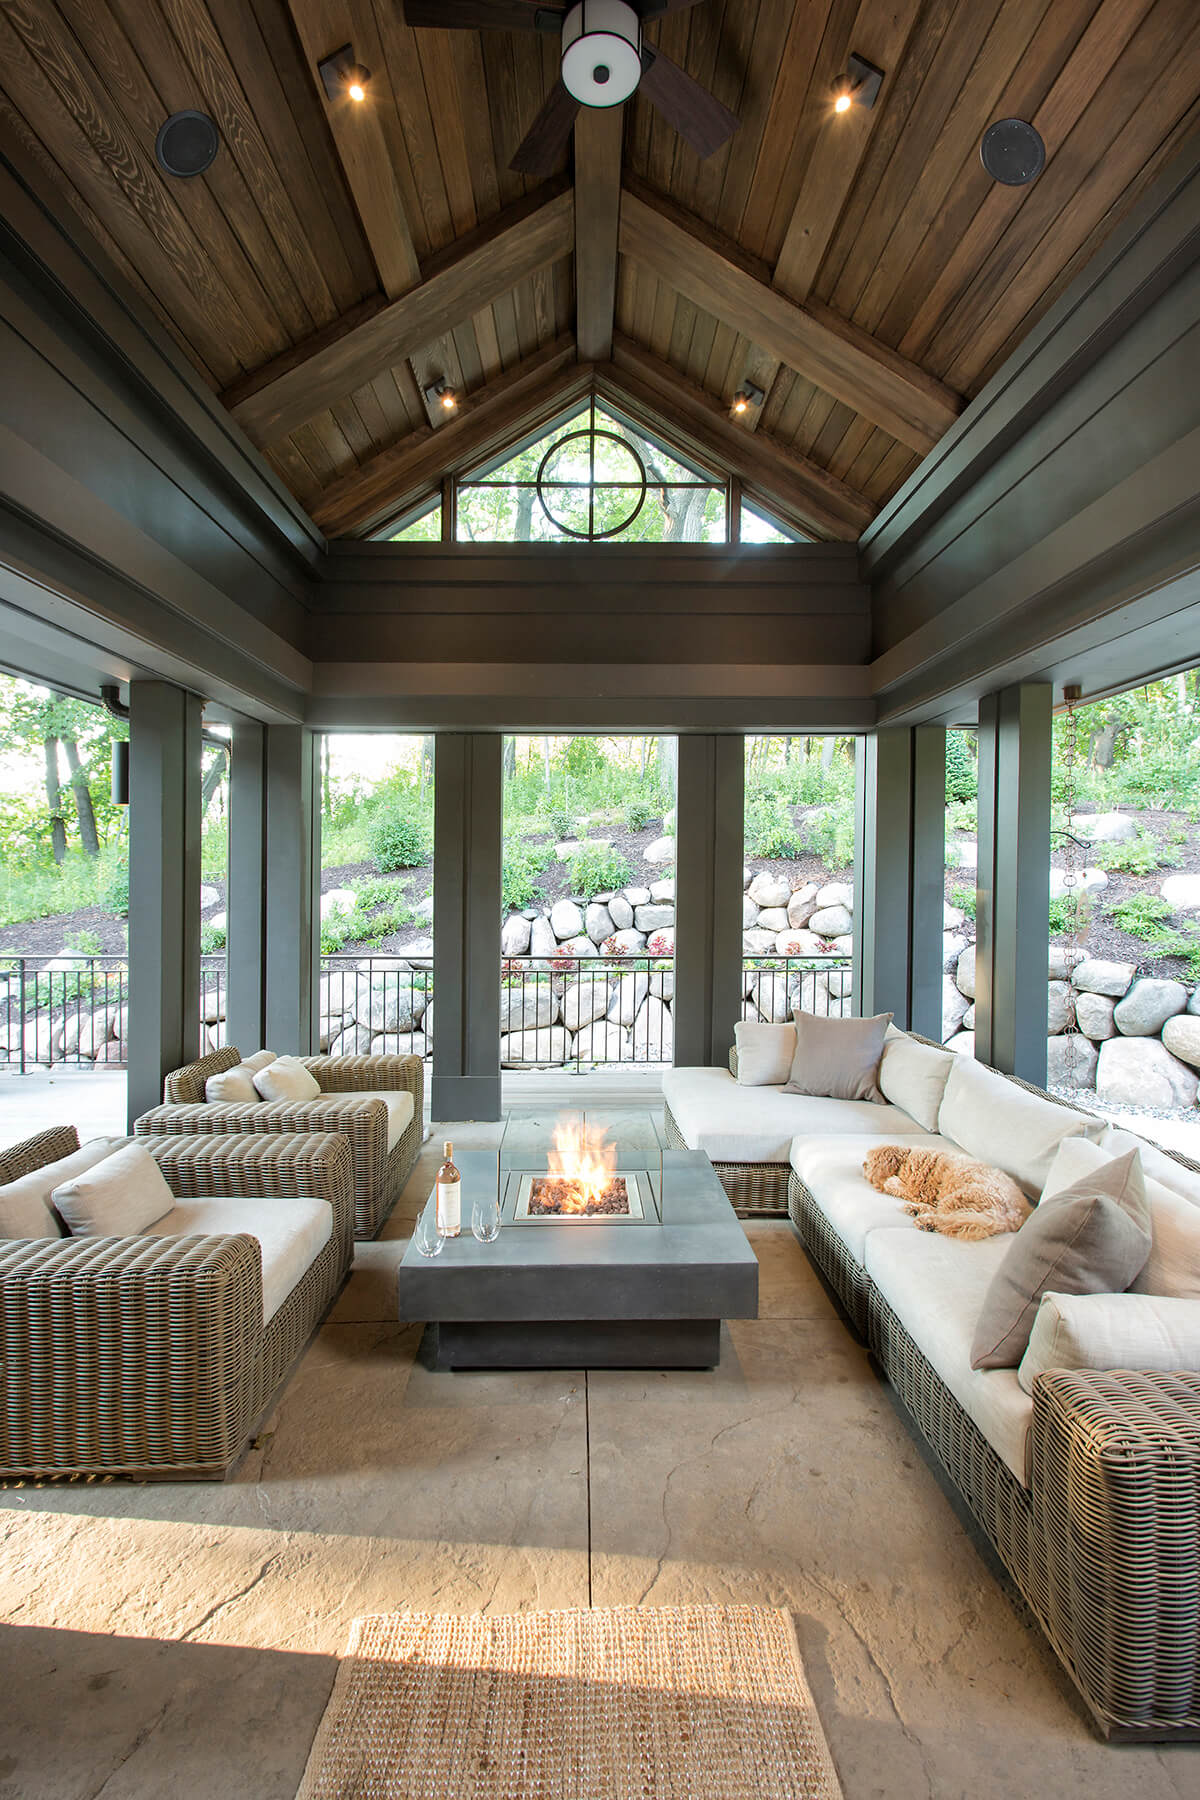 25. Open Lounge With A Fire Pit Table